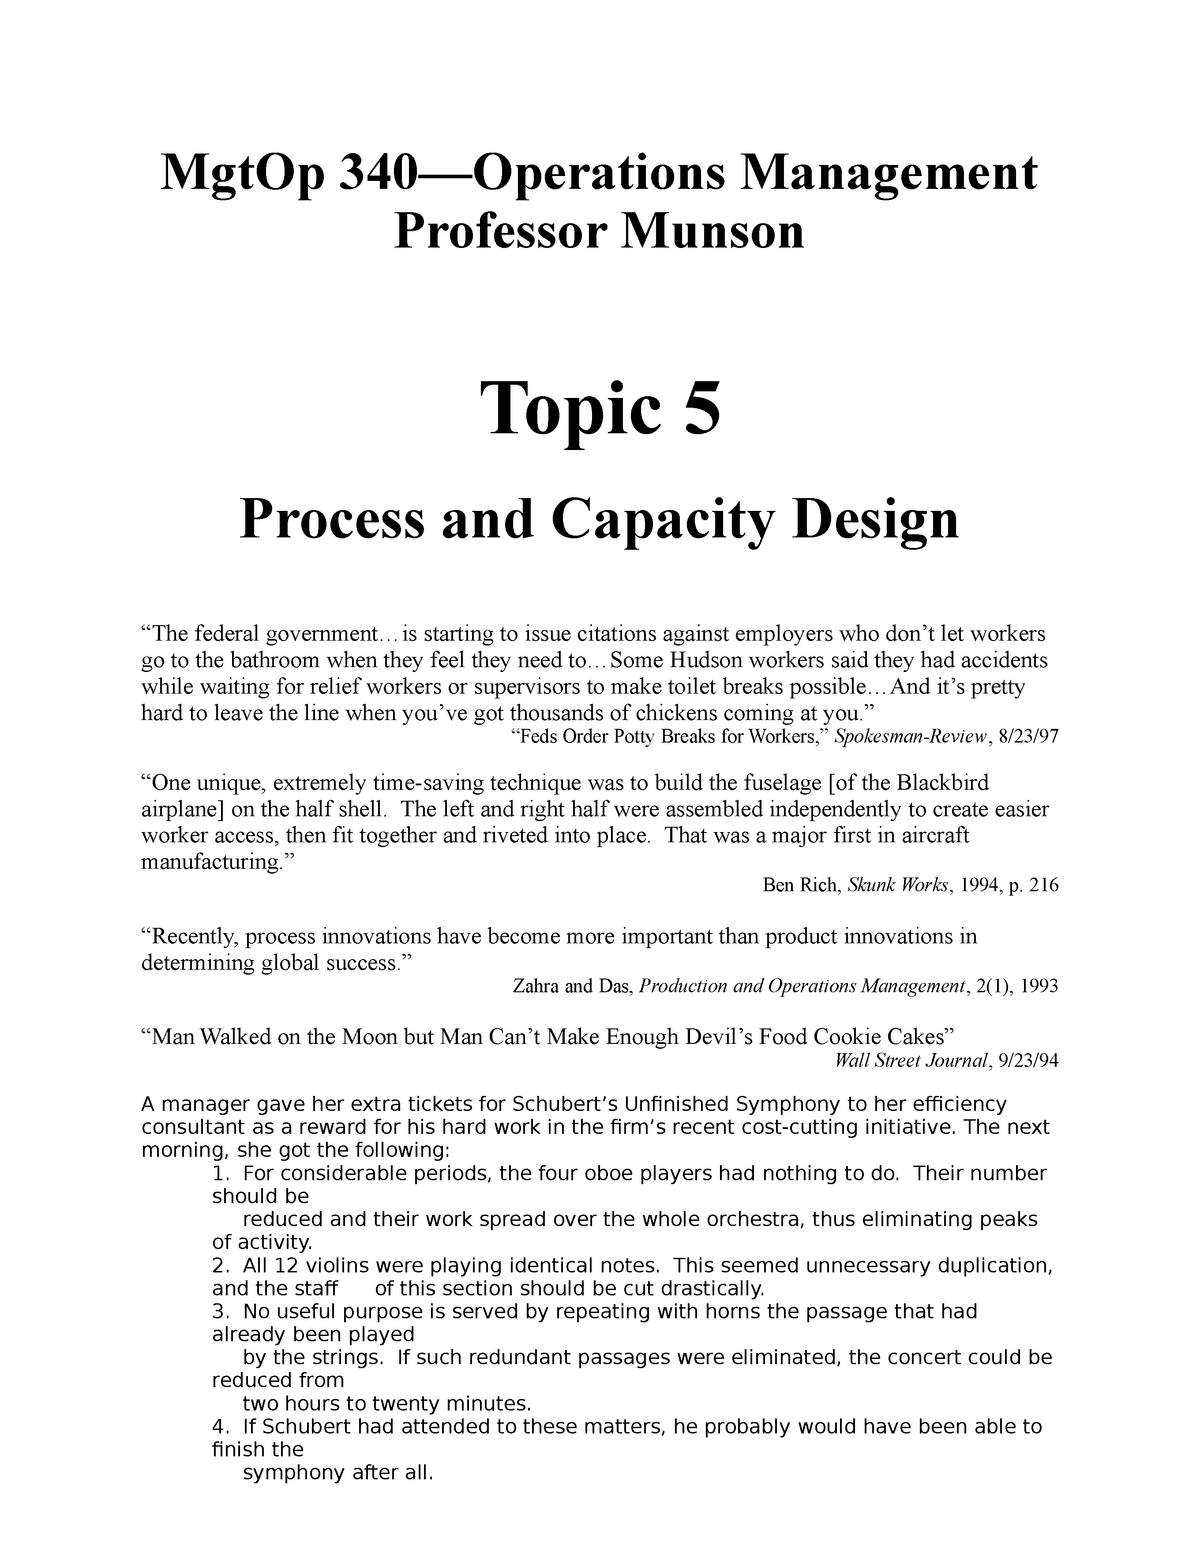 Topic 5 - Process and Capacity Design - MGTOP 340 - WSU